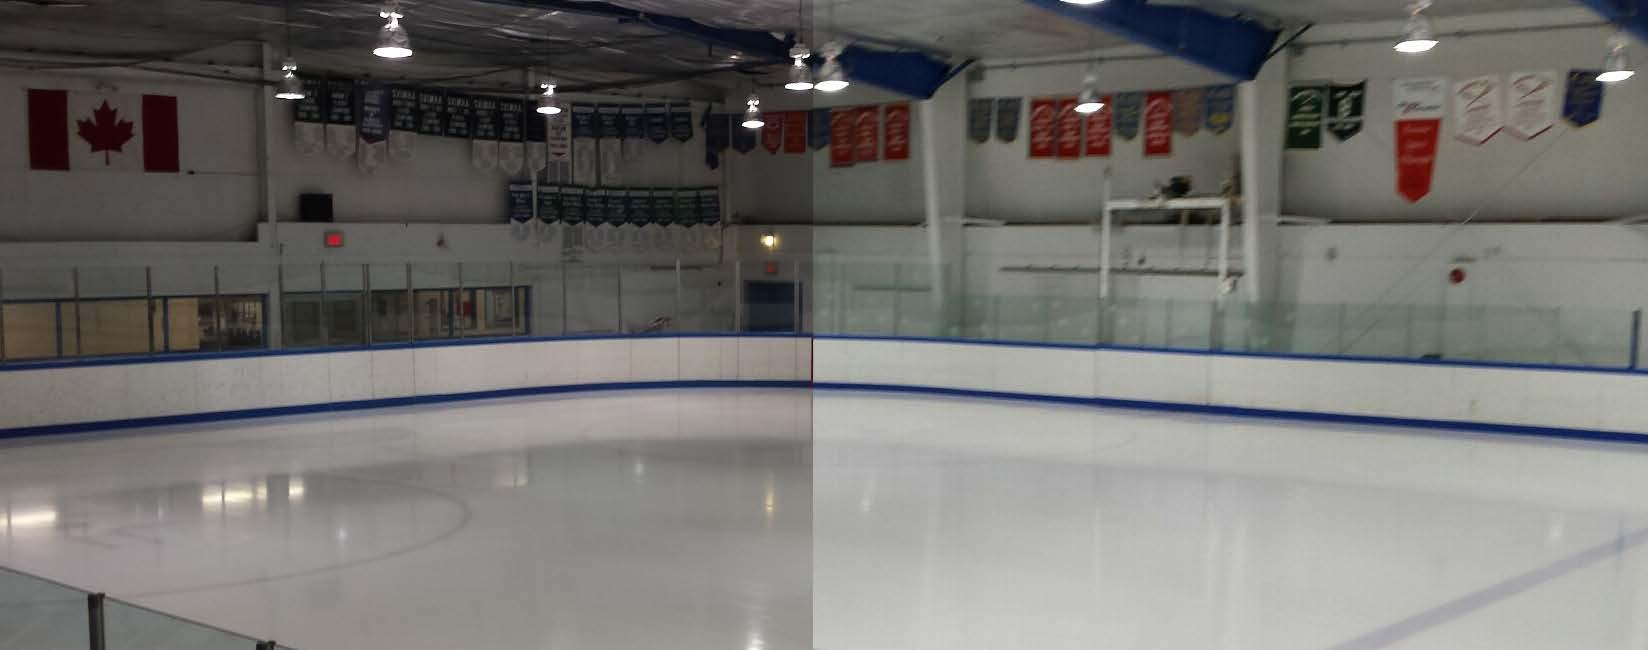 Mr. Electric in Victoria: Check out the difference this LED lighting upgrade made to this hockey arena! The ice went from gray to white!!  Ask us about 30%-100% grants available to upgrade your business today